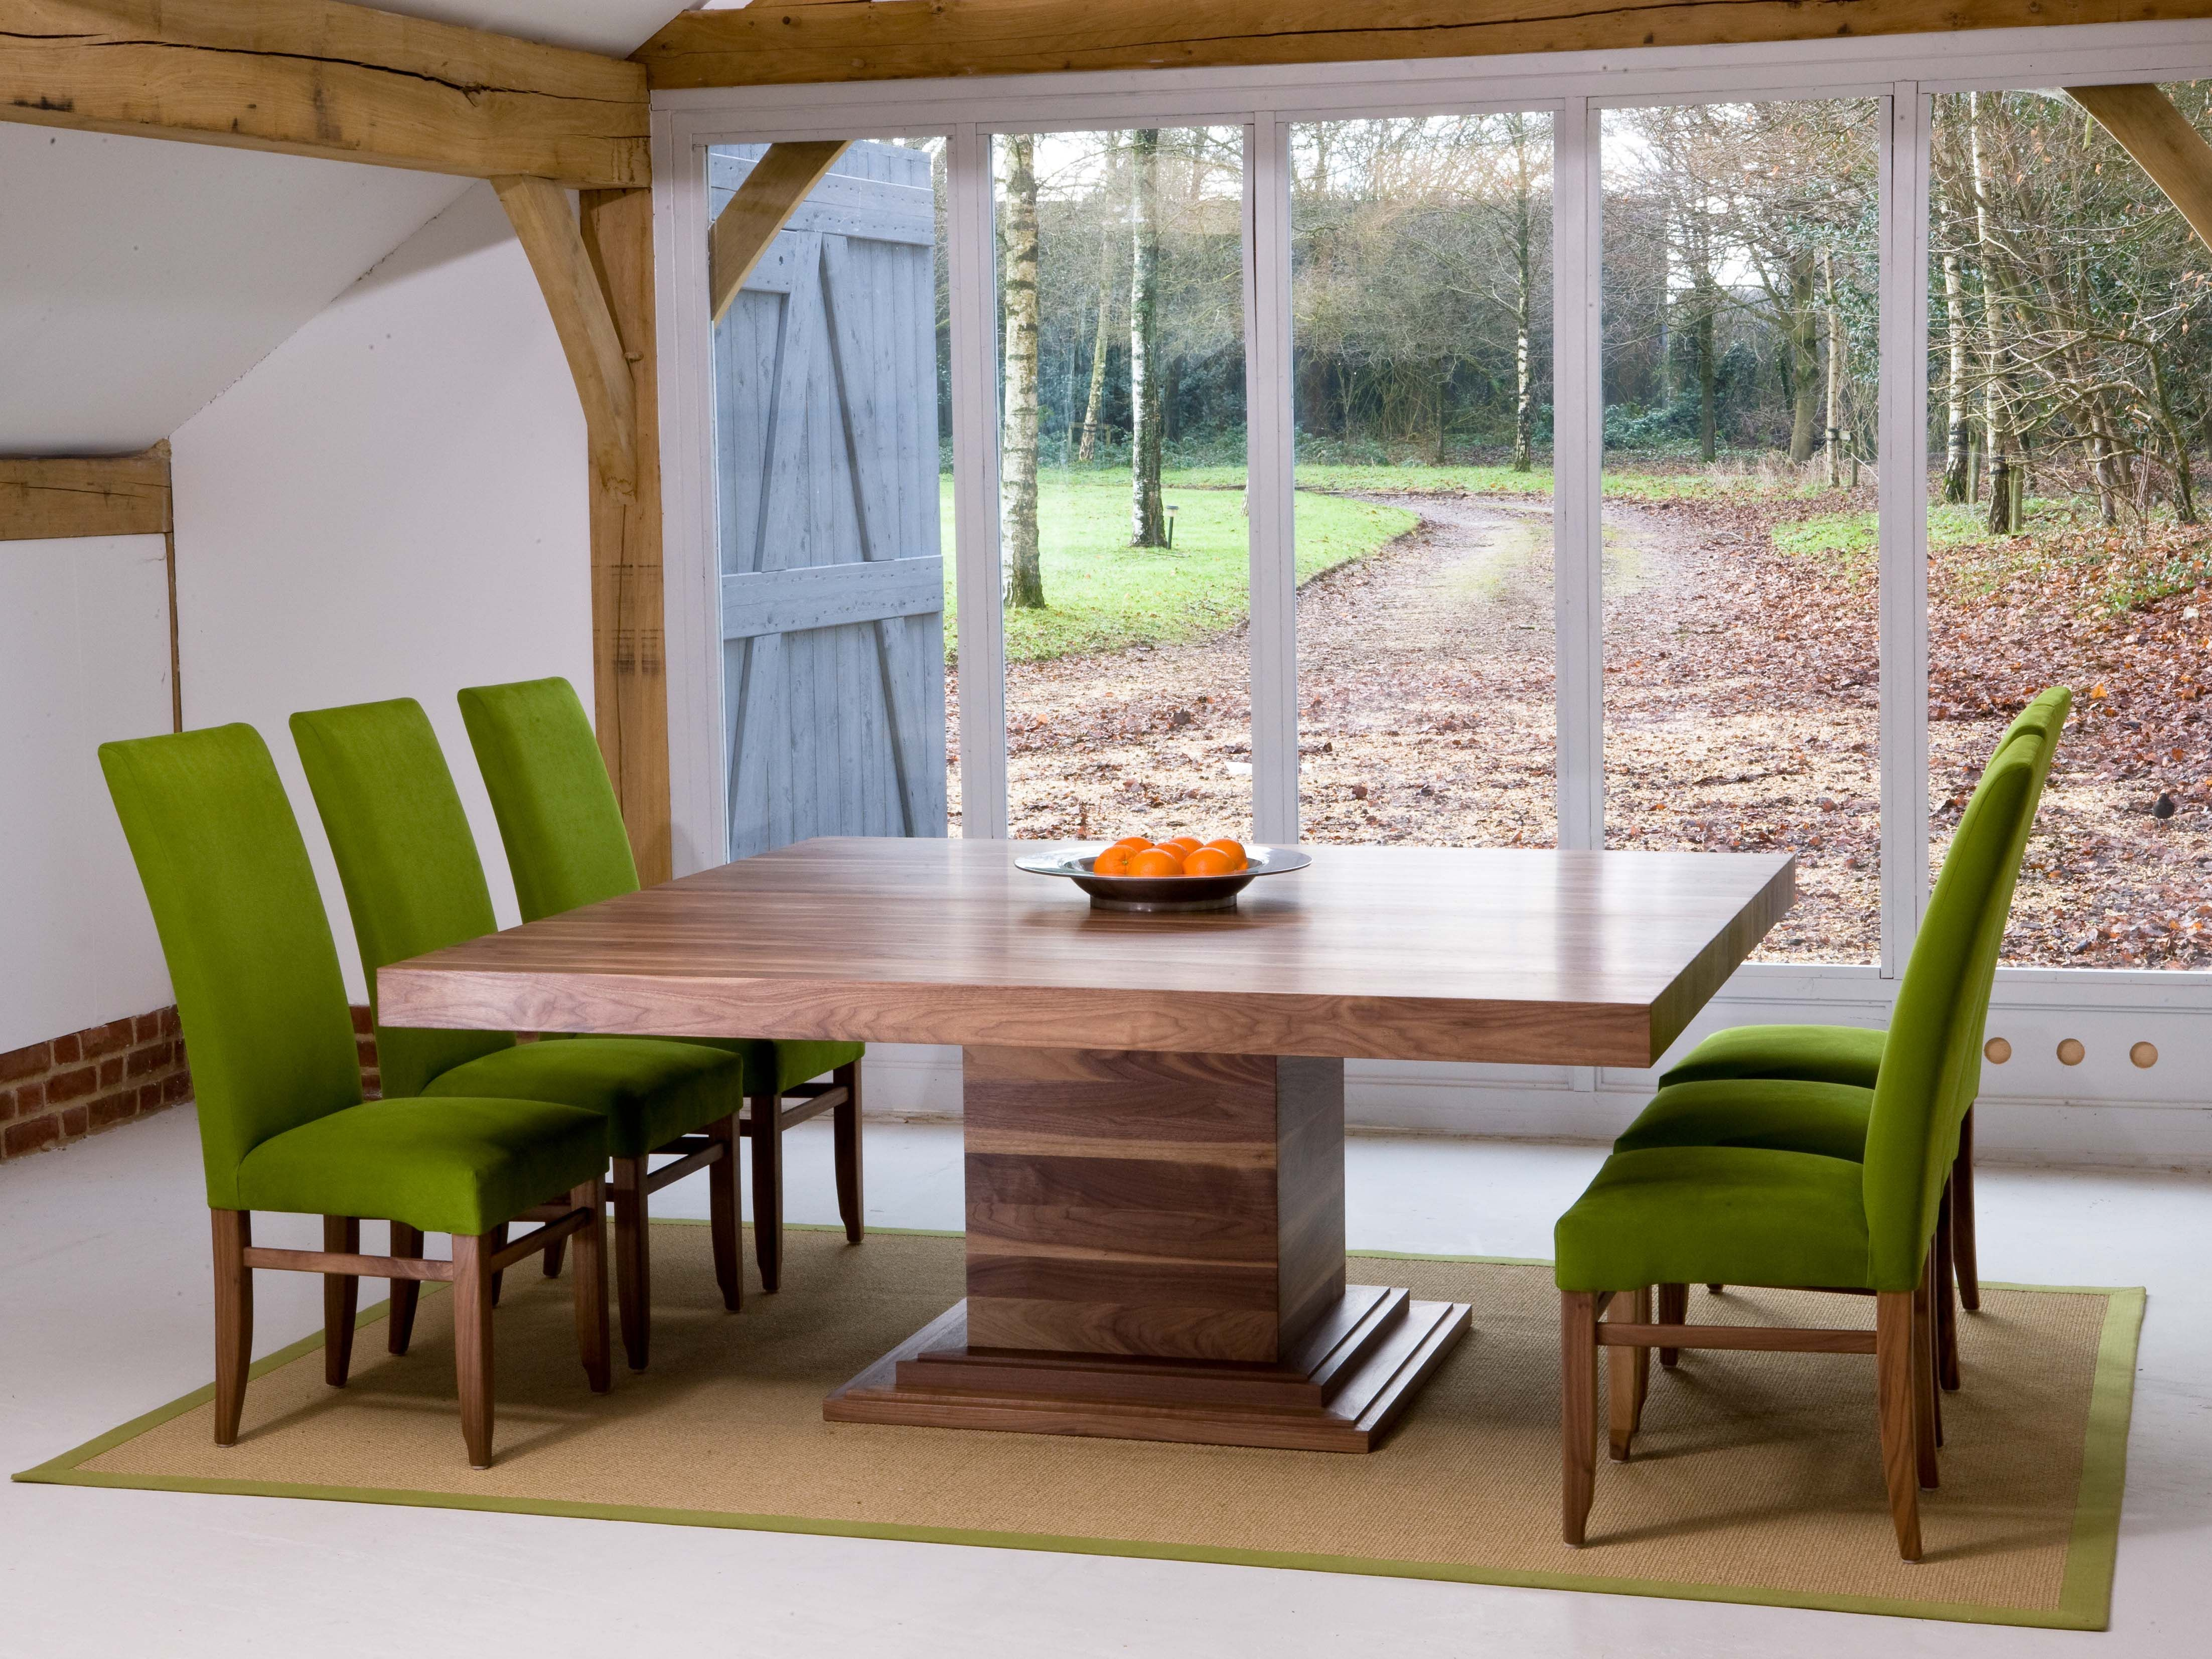 8 Seater Square Dining Room Table The Middleton Square Extending Central Pedestal Table In Solid